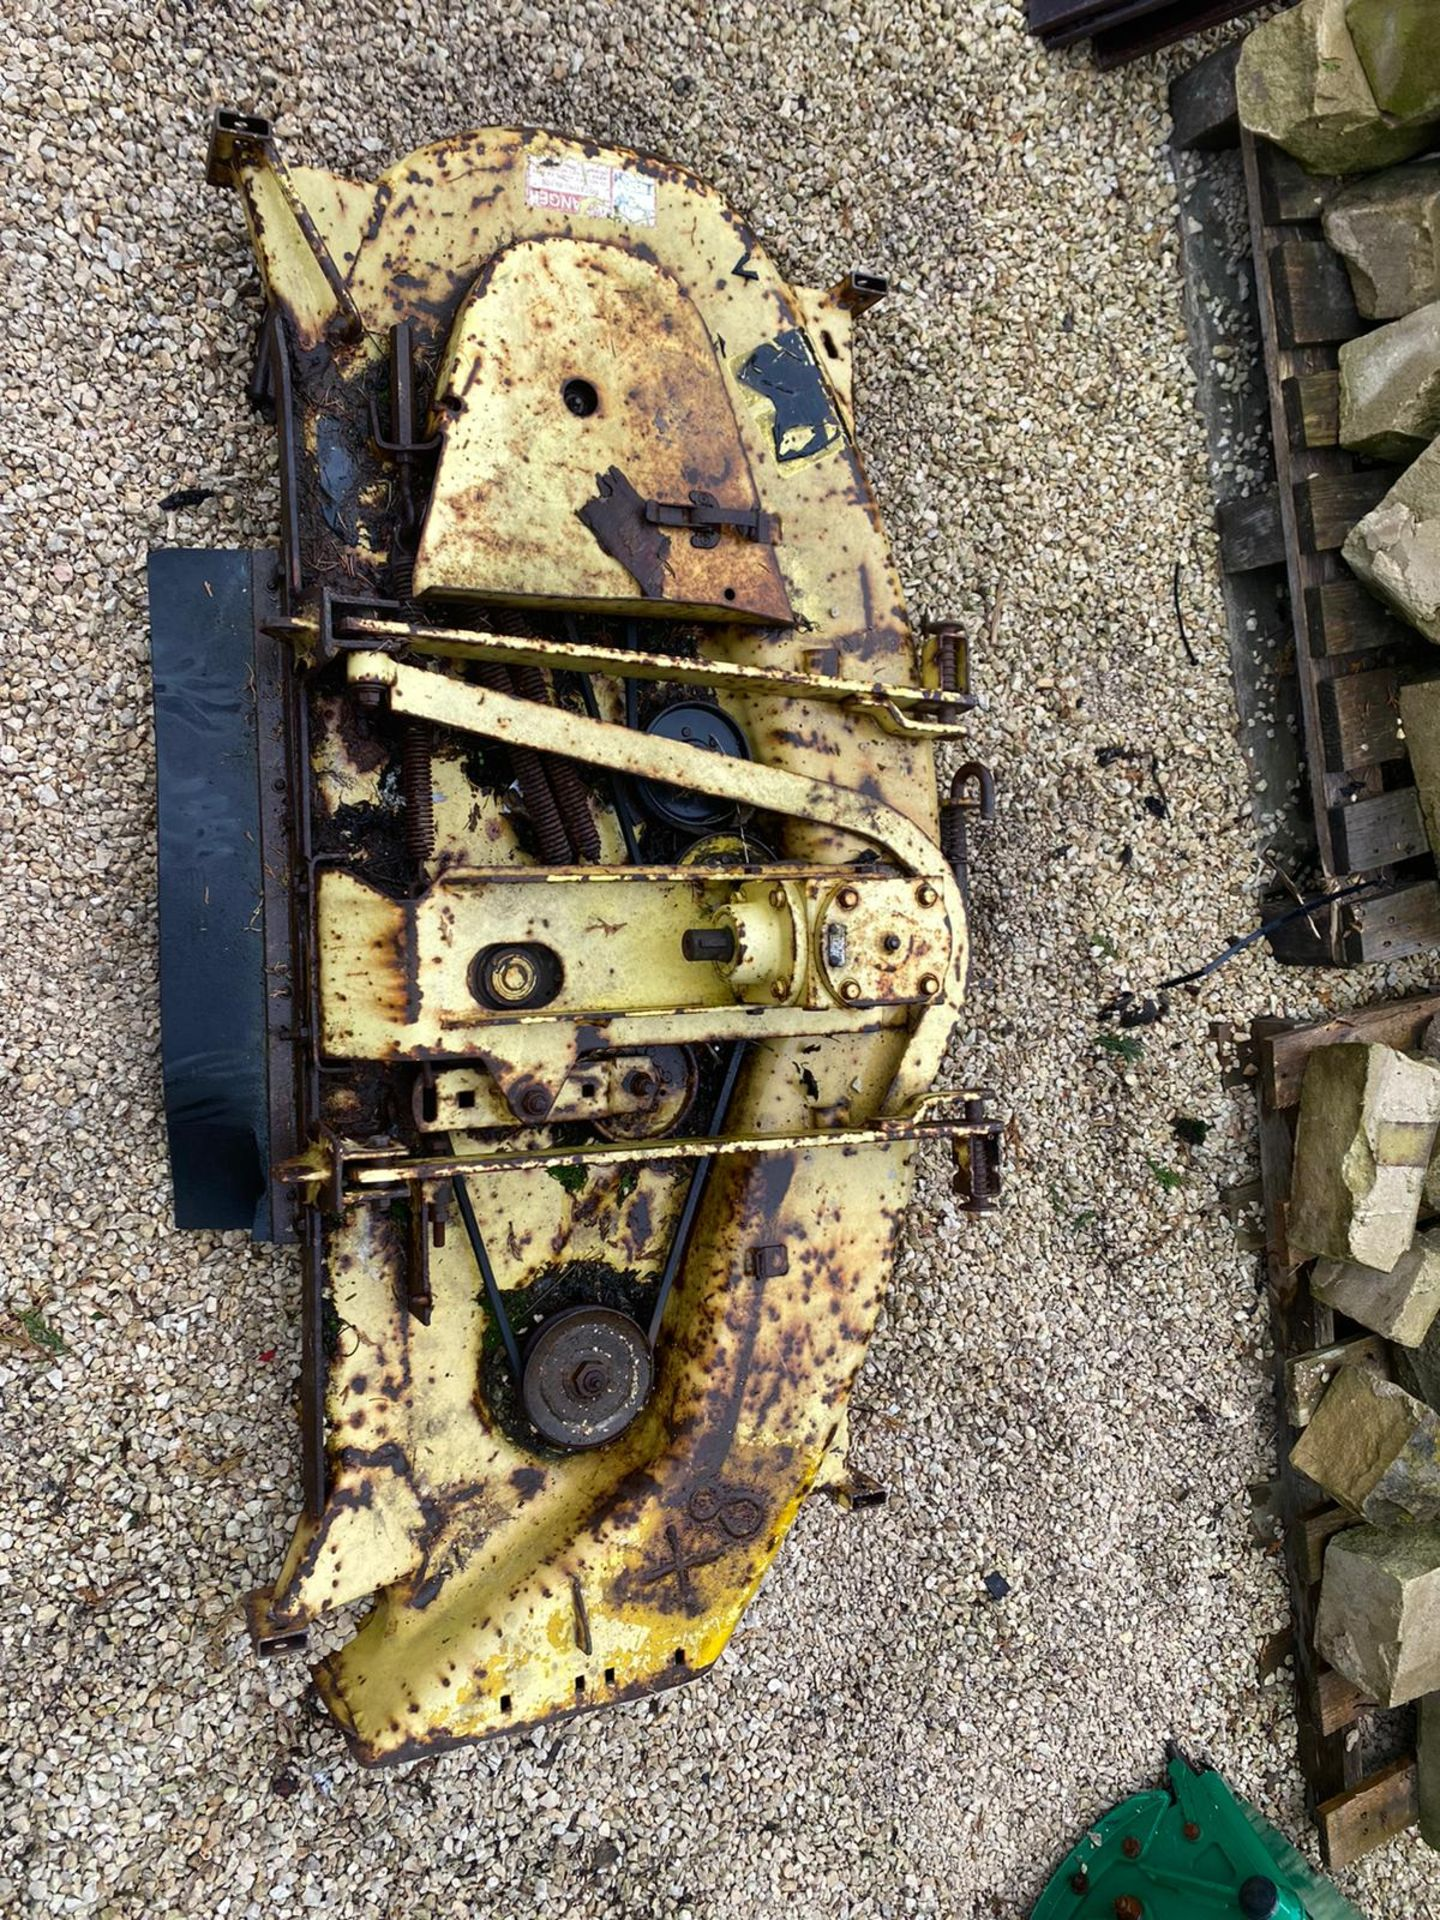 JOHN DEERE 455 DECK, IN WORKING CONDITION, JUST NEEDS PAINTING *NO VAT* - Image 2 of 3